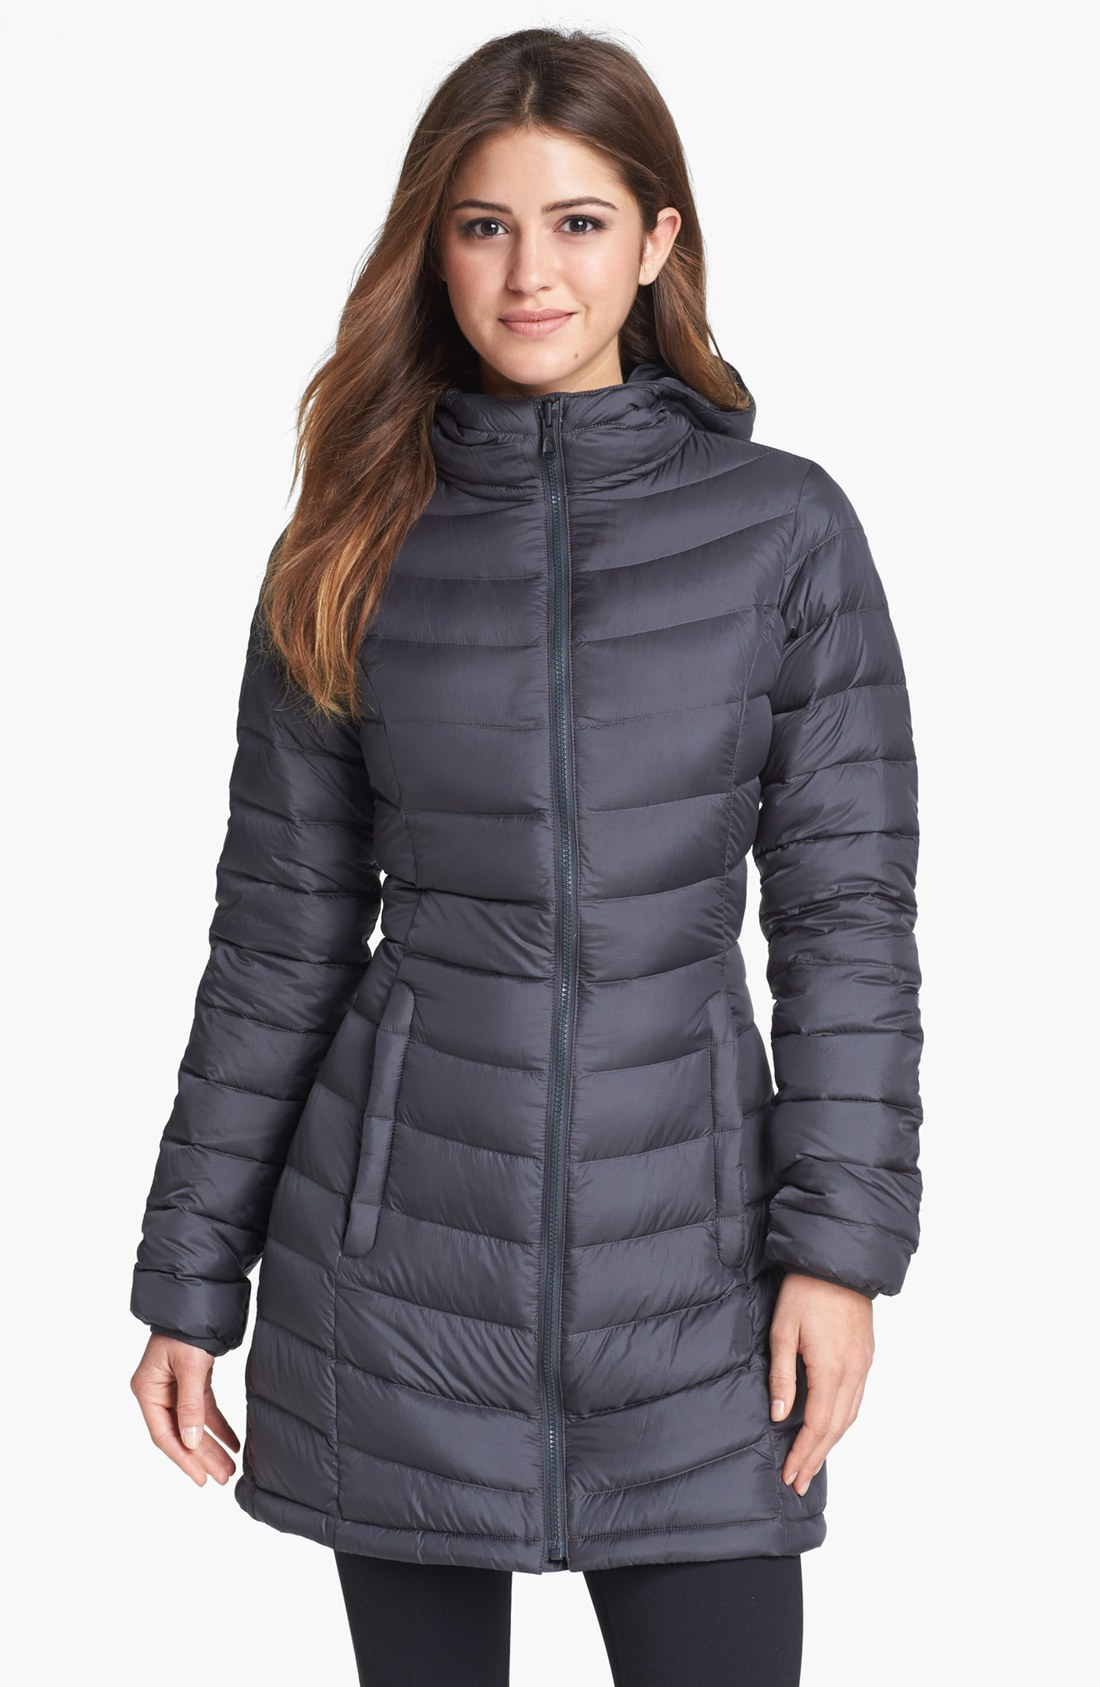 The North Face Jenae Hooded Down Jacket In Gray Lyst